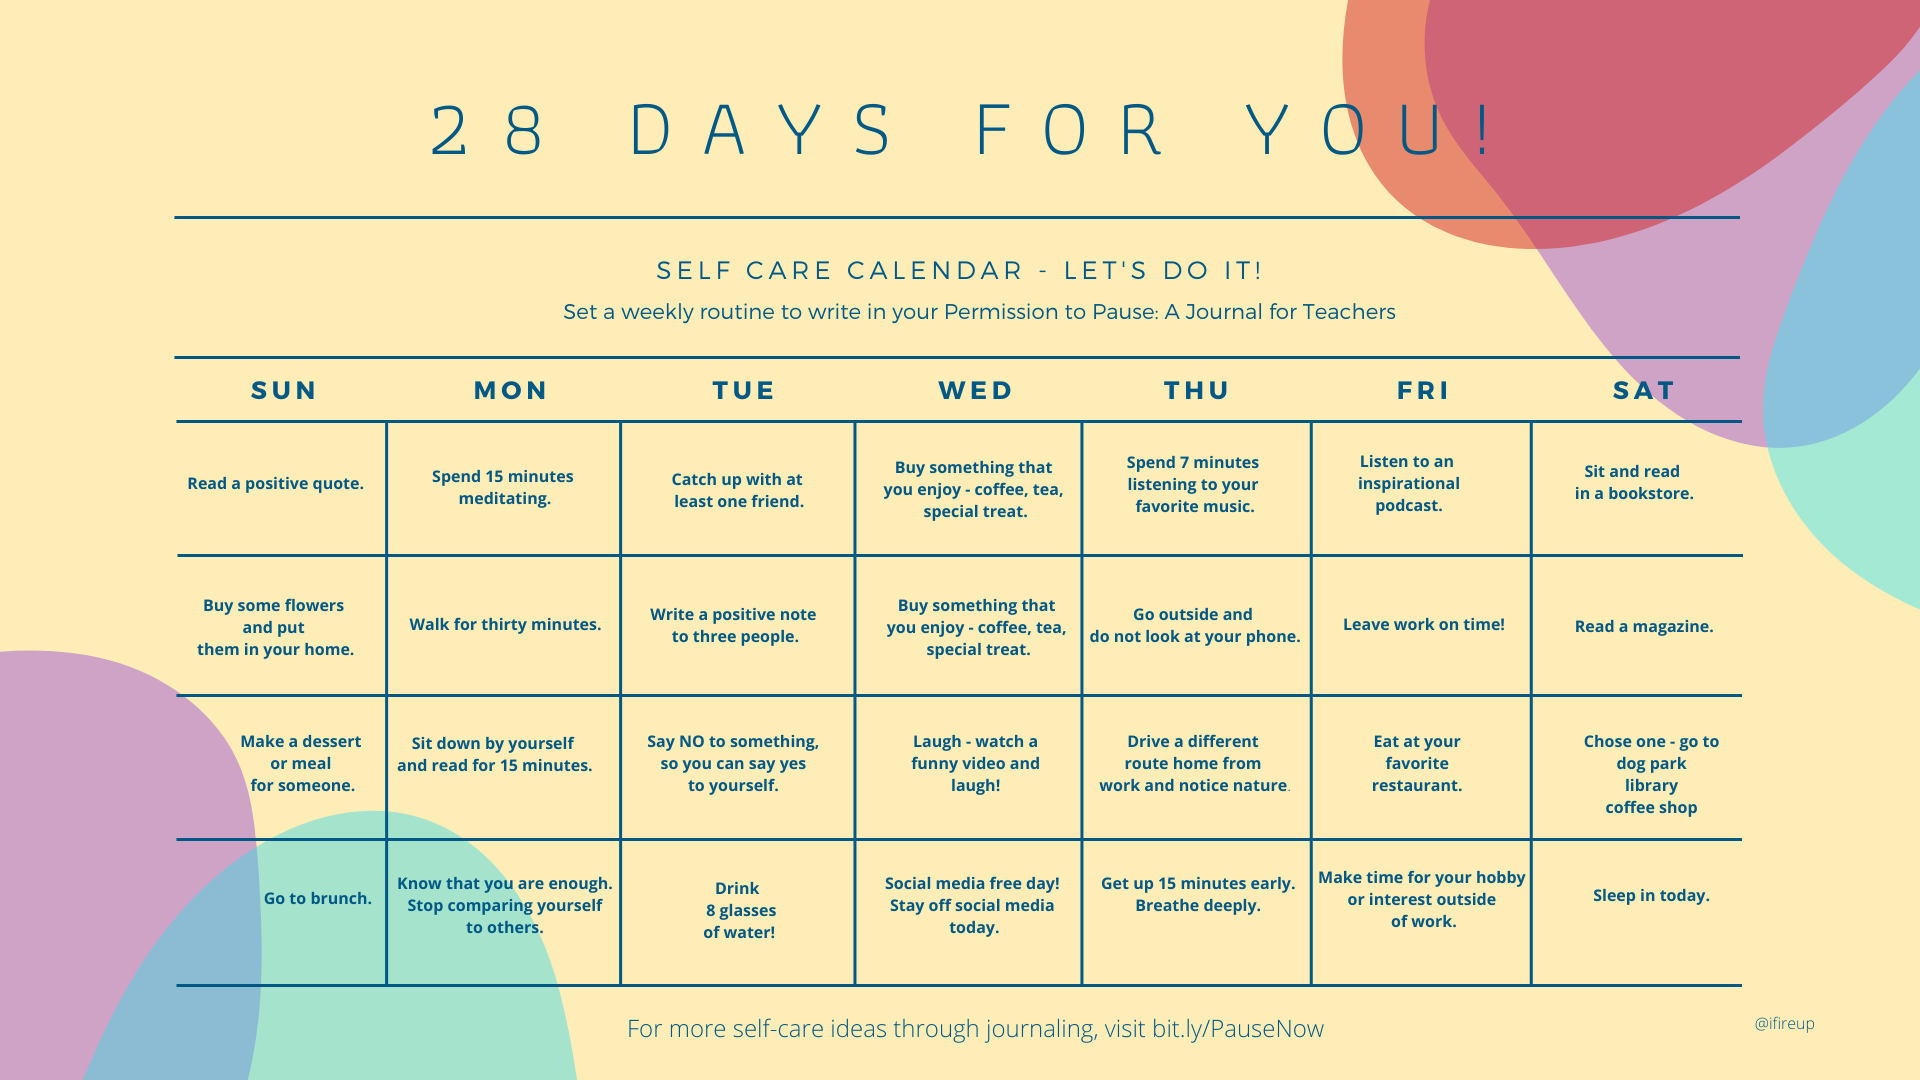 28 Days of Self-Care for You!